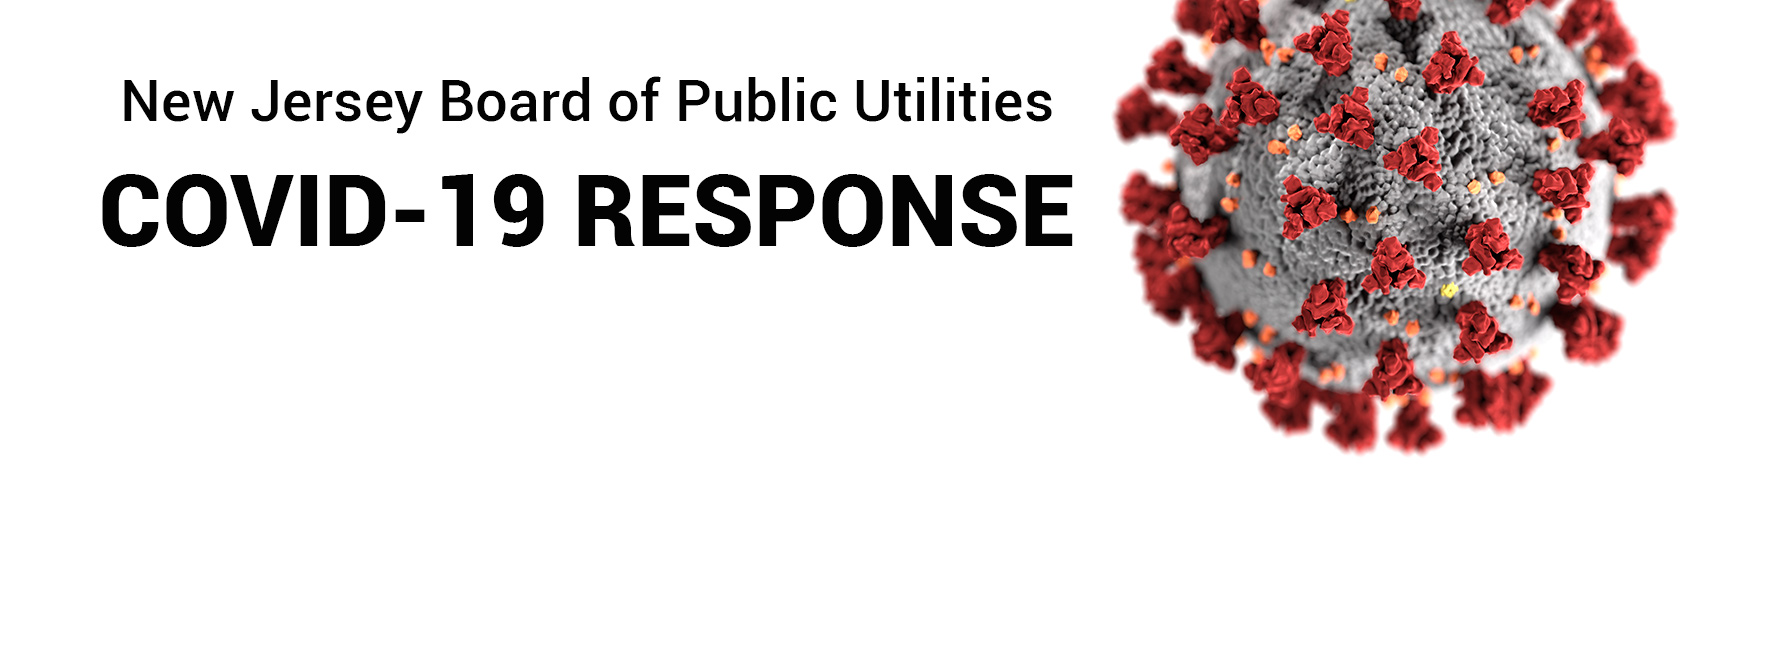 New Jersey Board of Public Utilities COVID-19 RESPONSE